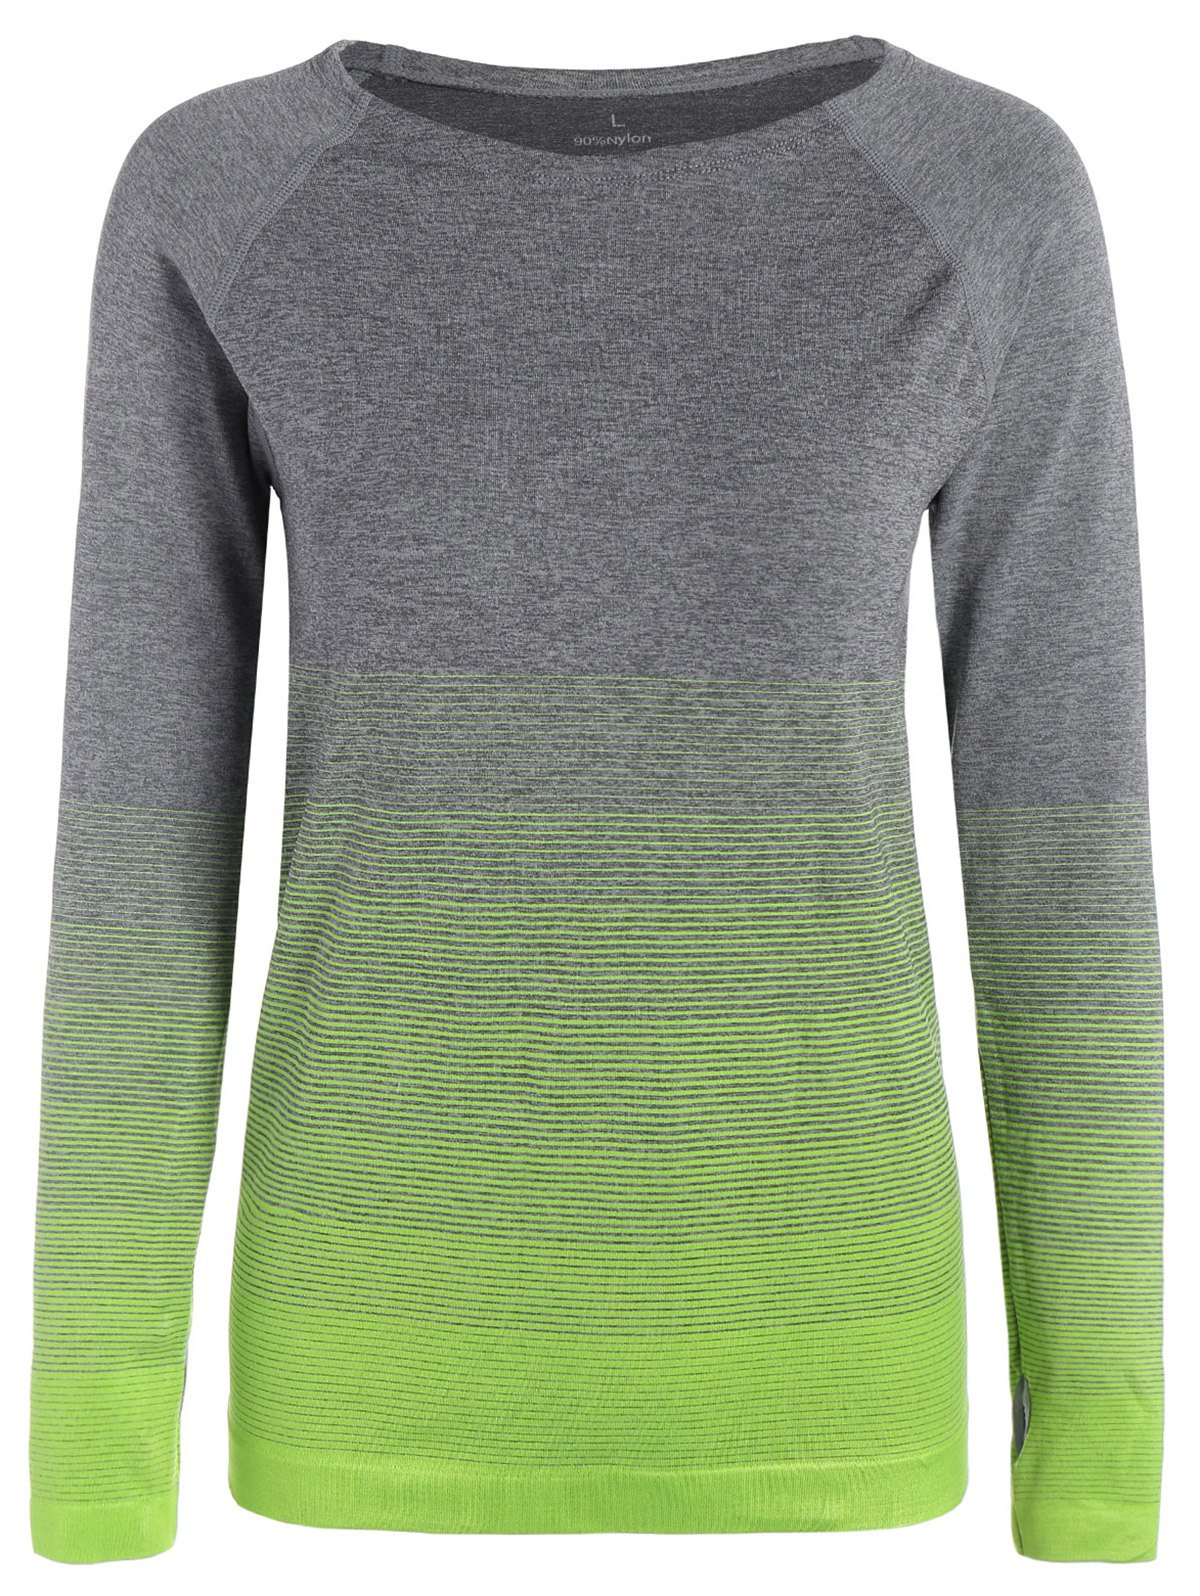 Ombre Long Sleeve Running Gym Top With Thumb HoleWOMEN<br><br>Size: M; Color: NEON GREEN; Material: Nylon,Polyester,Spandex; Shirt Length: Regular; Sleeve Length: Full; Collar: Round Neck; Pattern Type: Striped; Weight: 0.248kg; Package Contents: 1 x Tee;